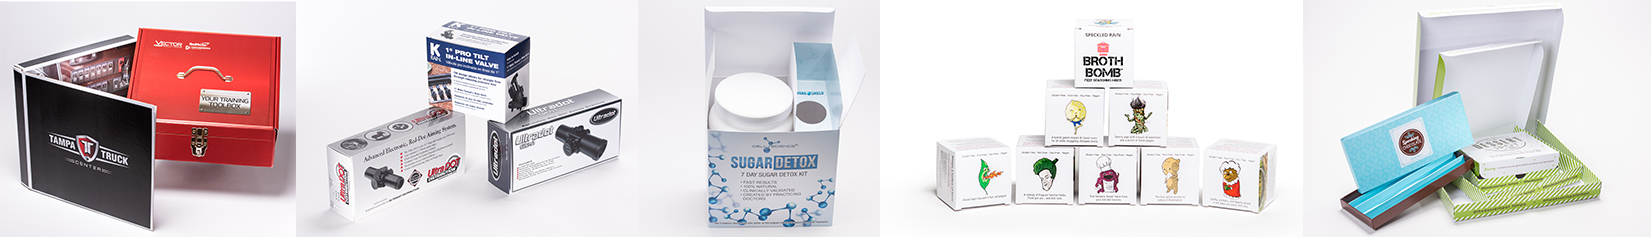 packaging-examples